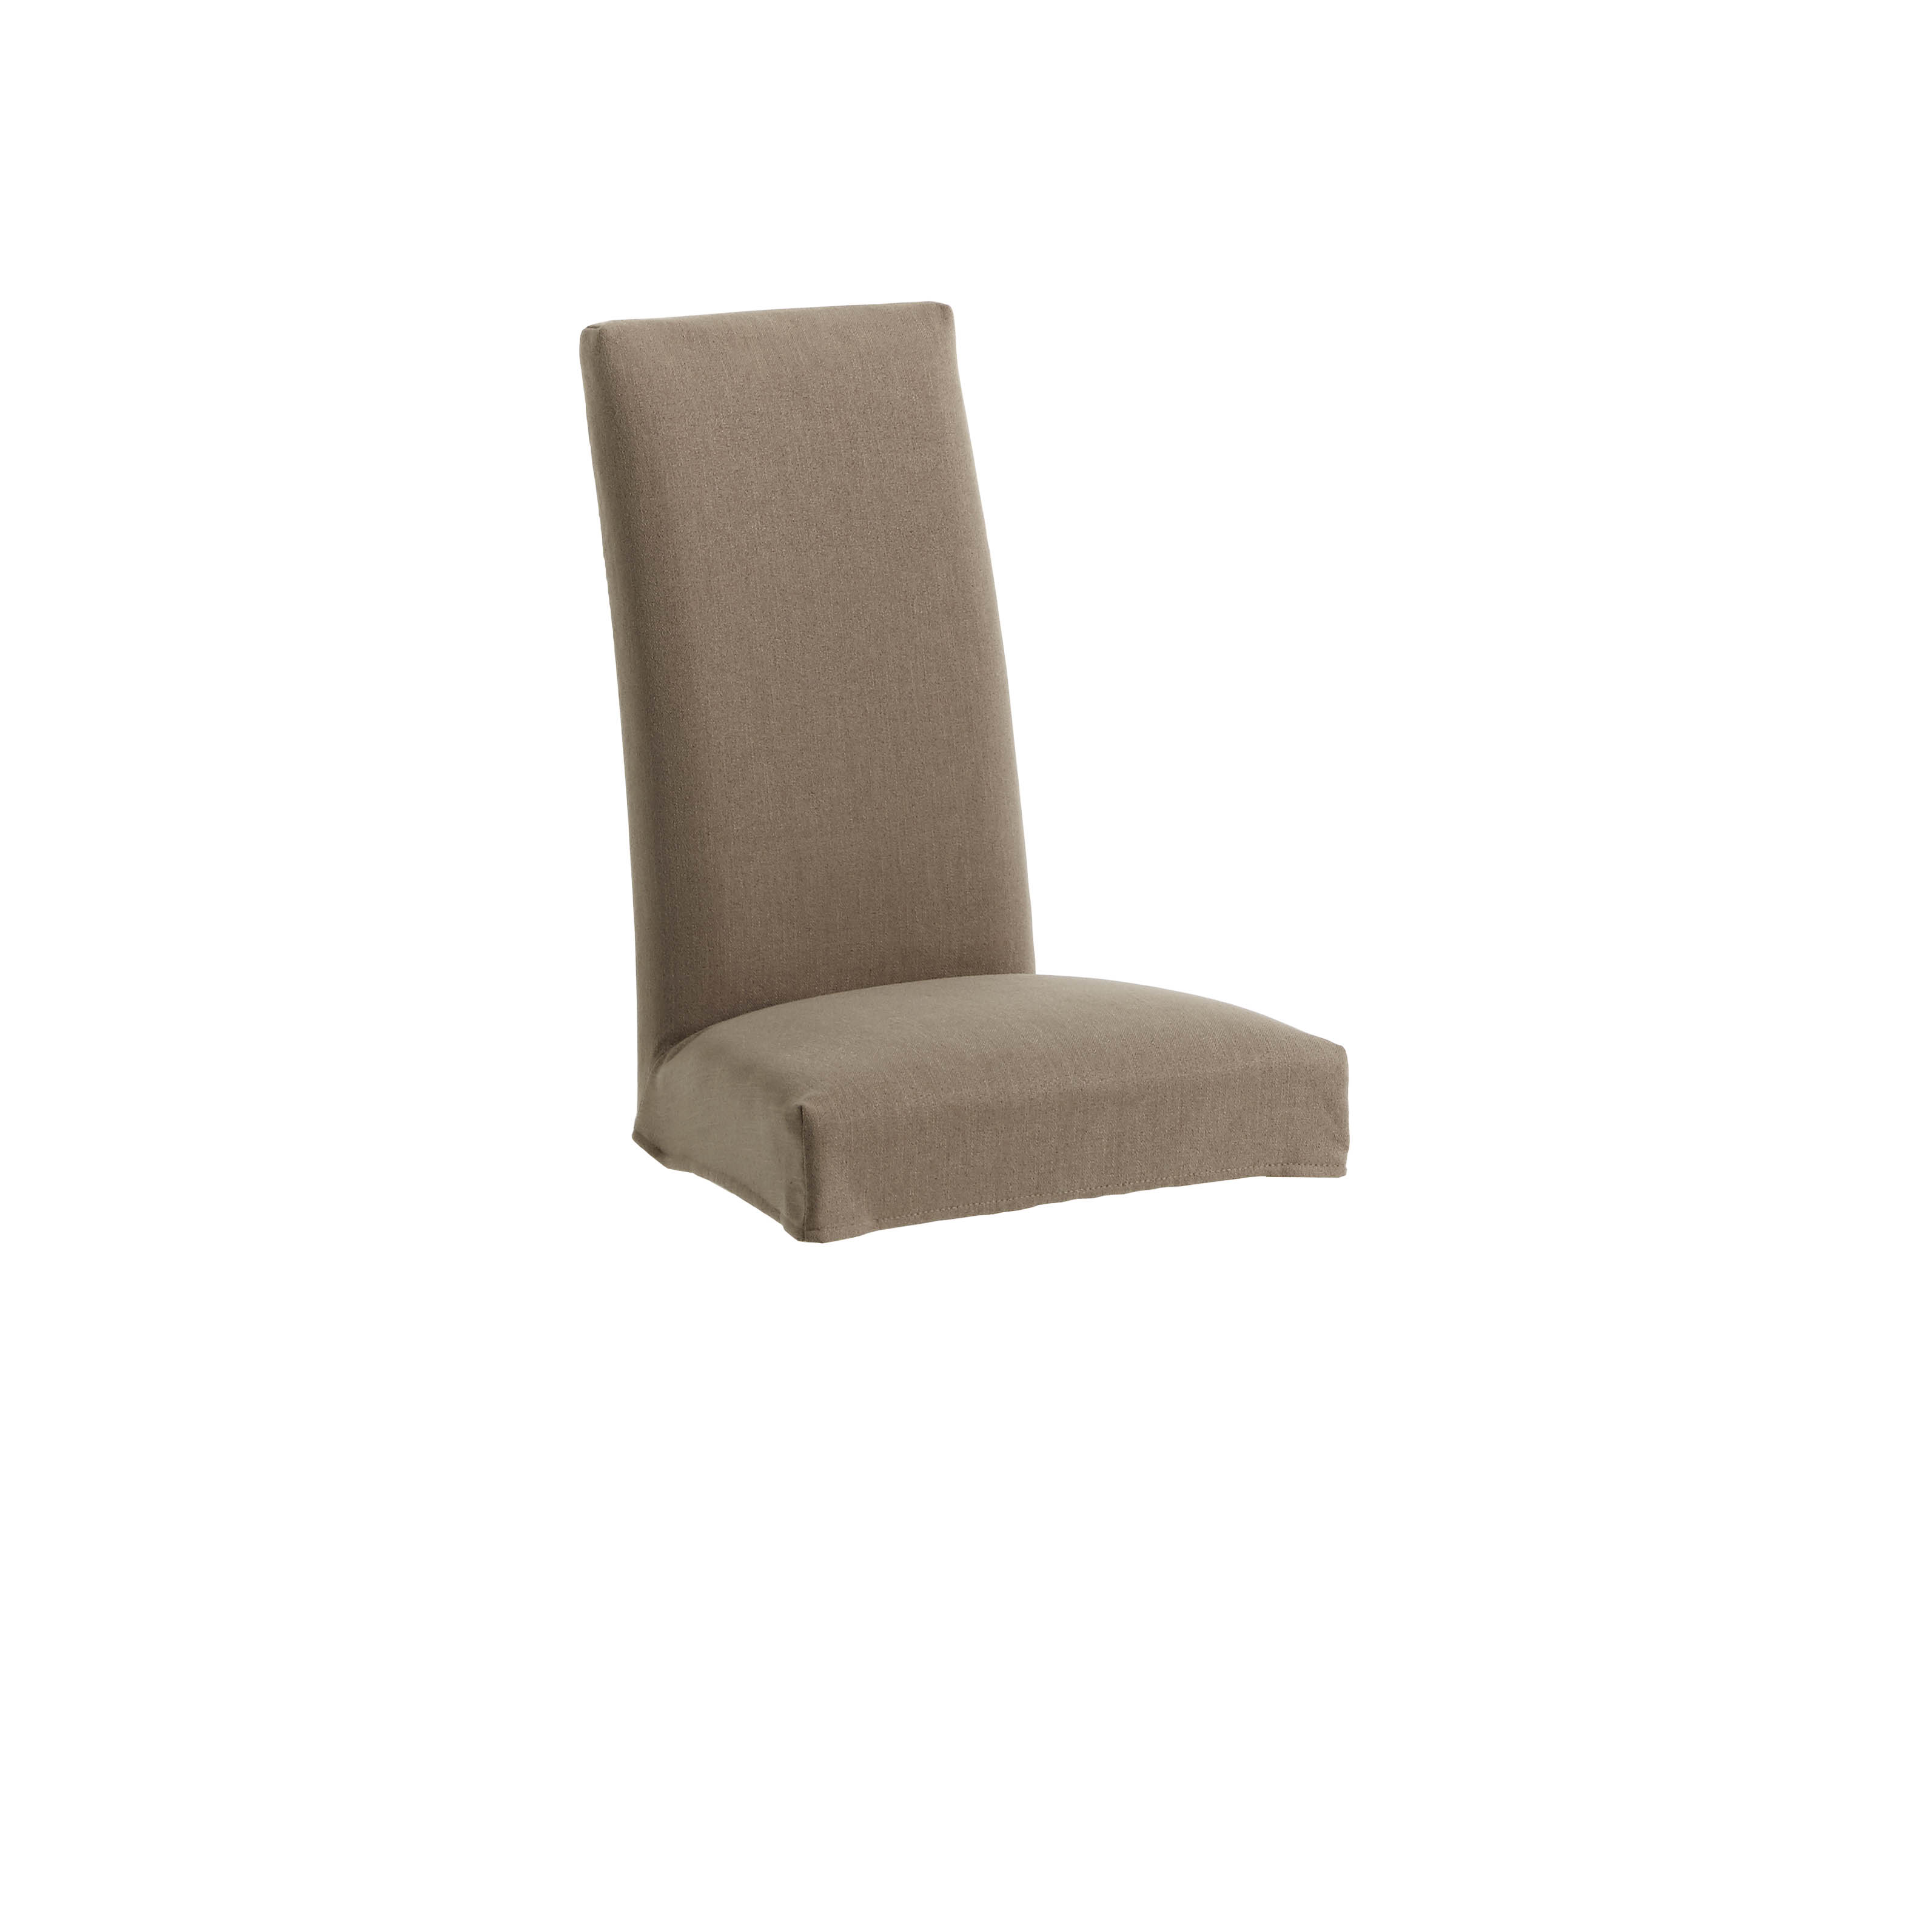 Kave home - housse de chaise freda marron